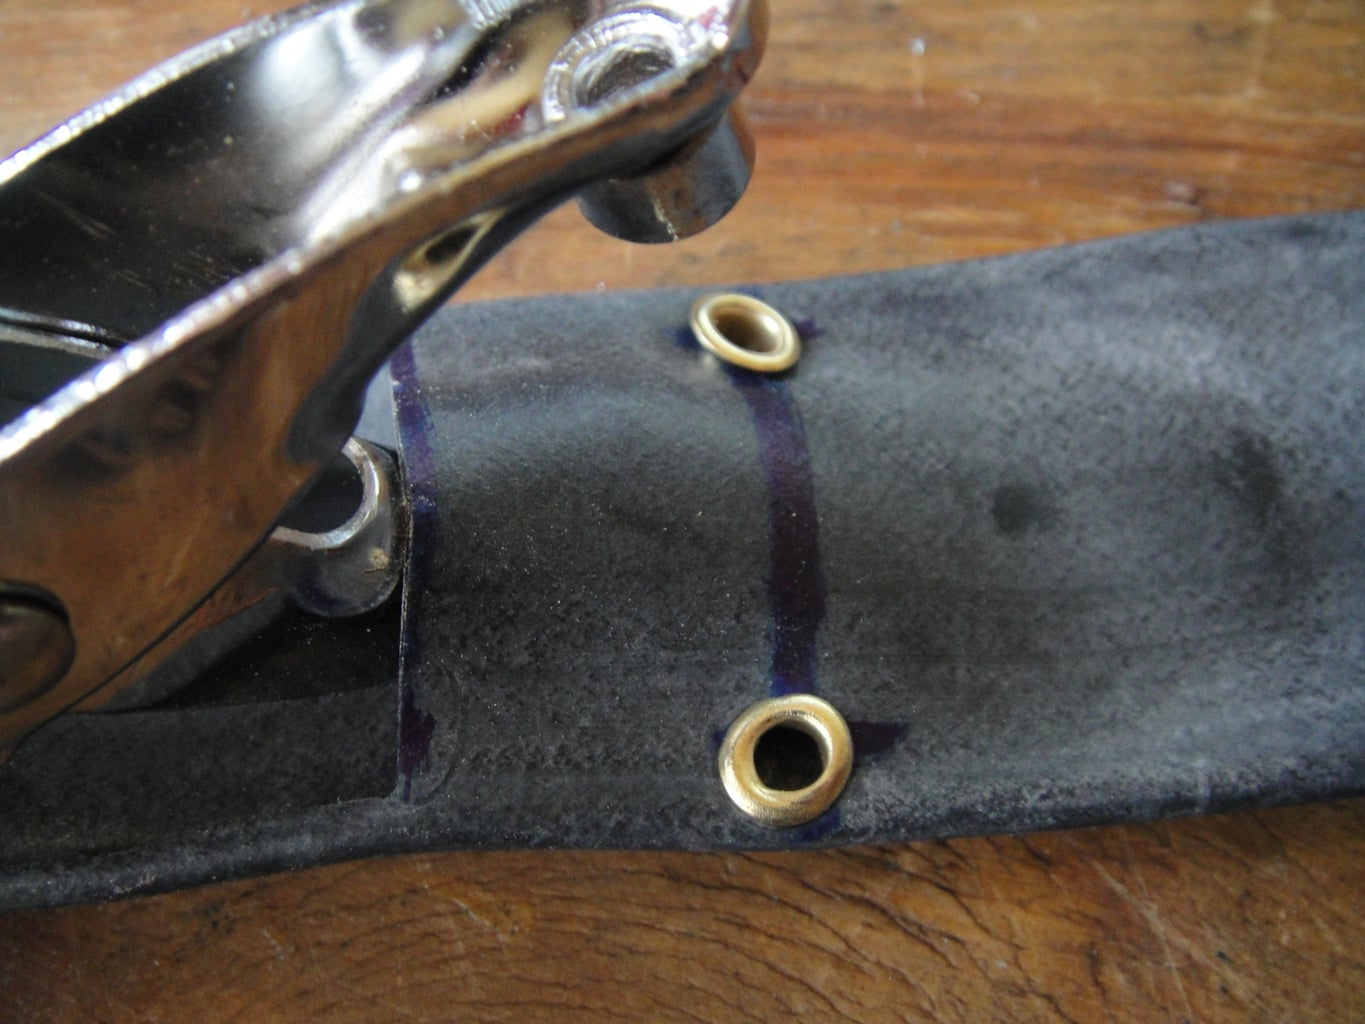 The Mudflap and Eyelets.